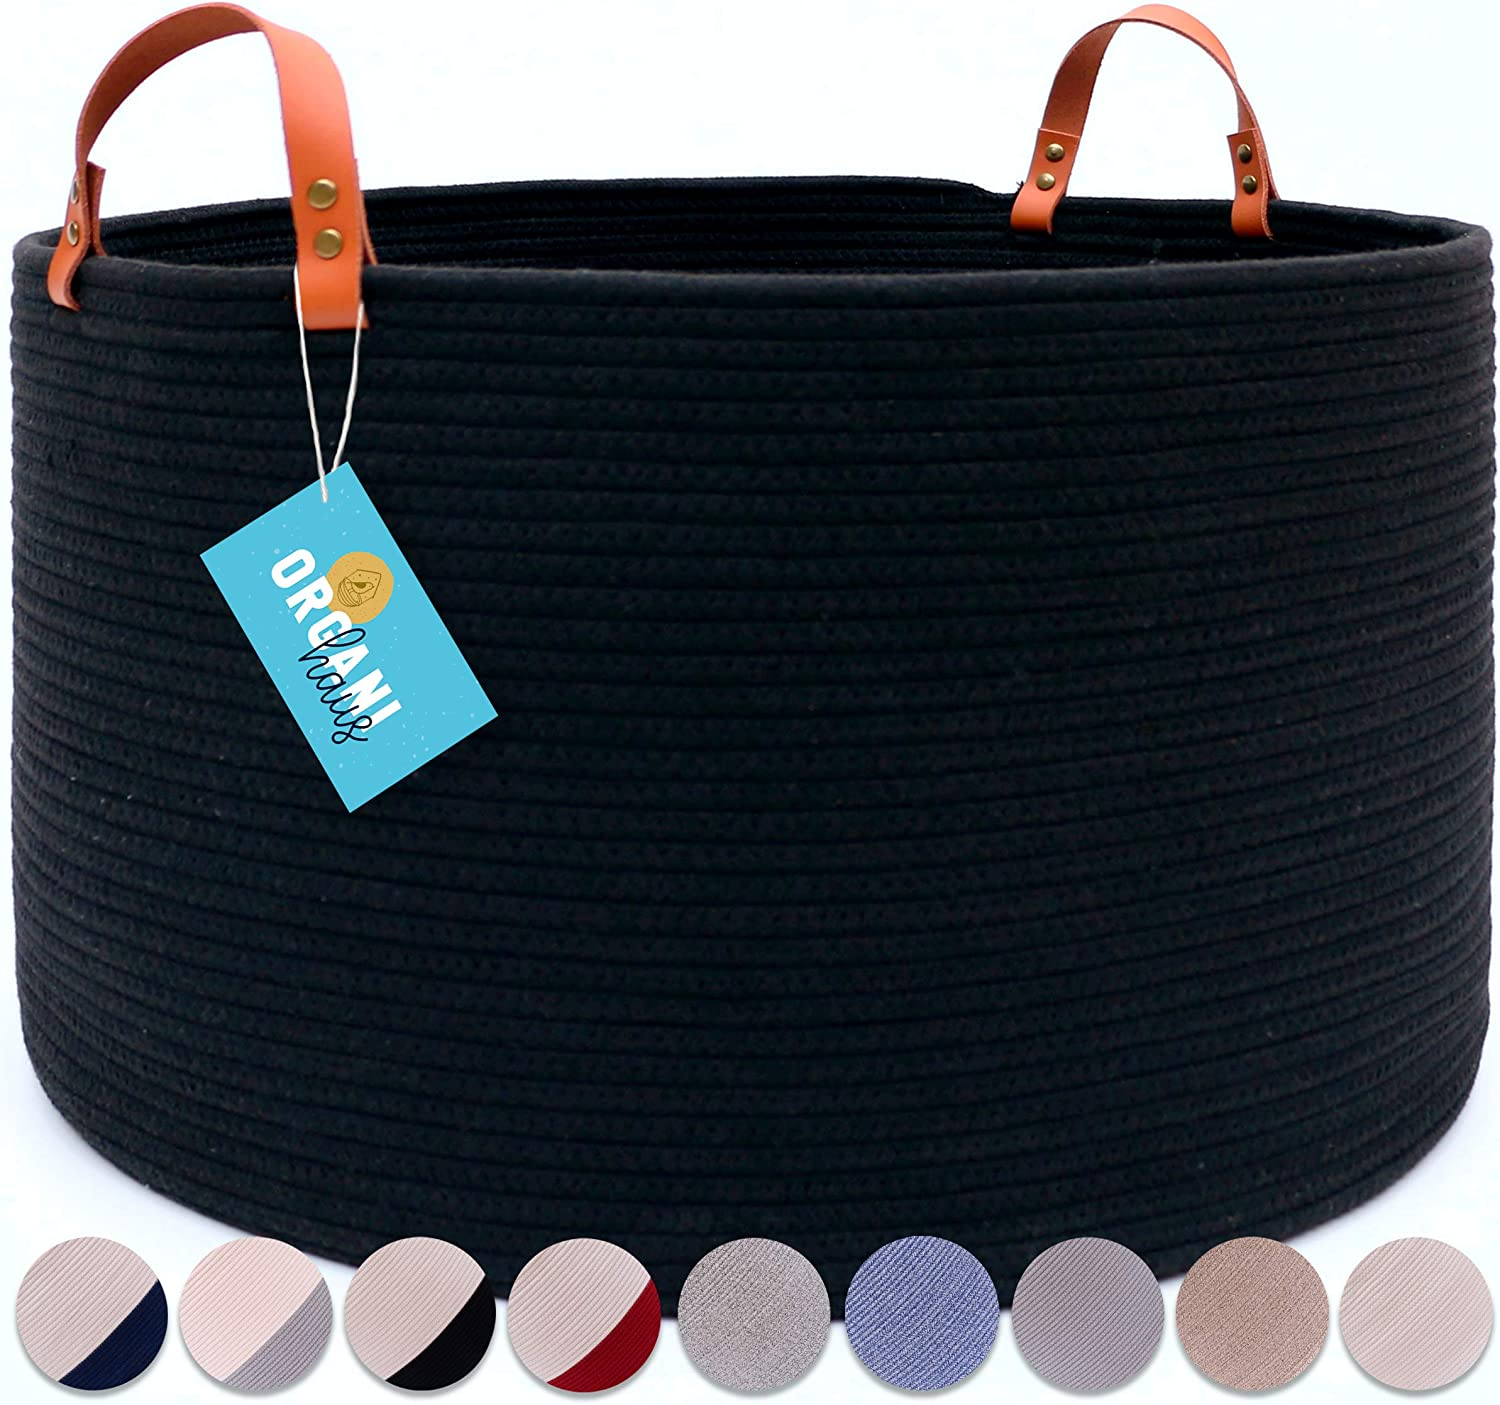 "OrganiHaus XXL Black Cotton Rope Basket with Real Leather Handles | Wide 20""x13.3"" Woven Blanket Storage Basket 